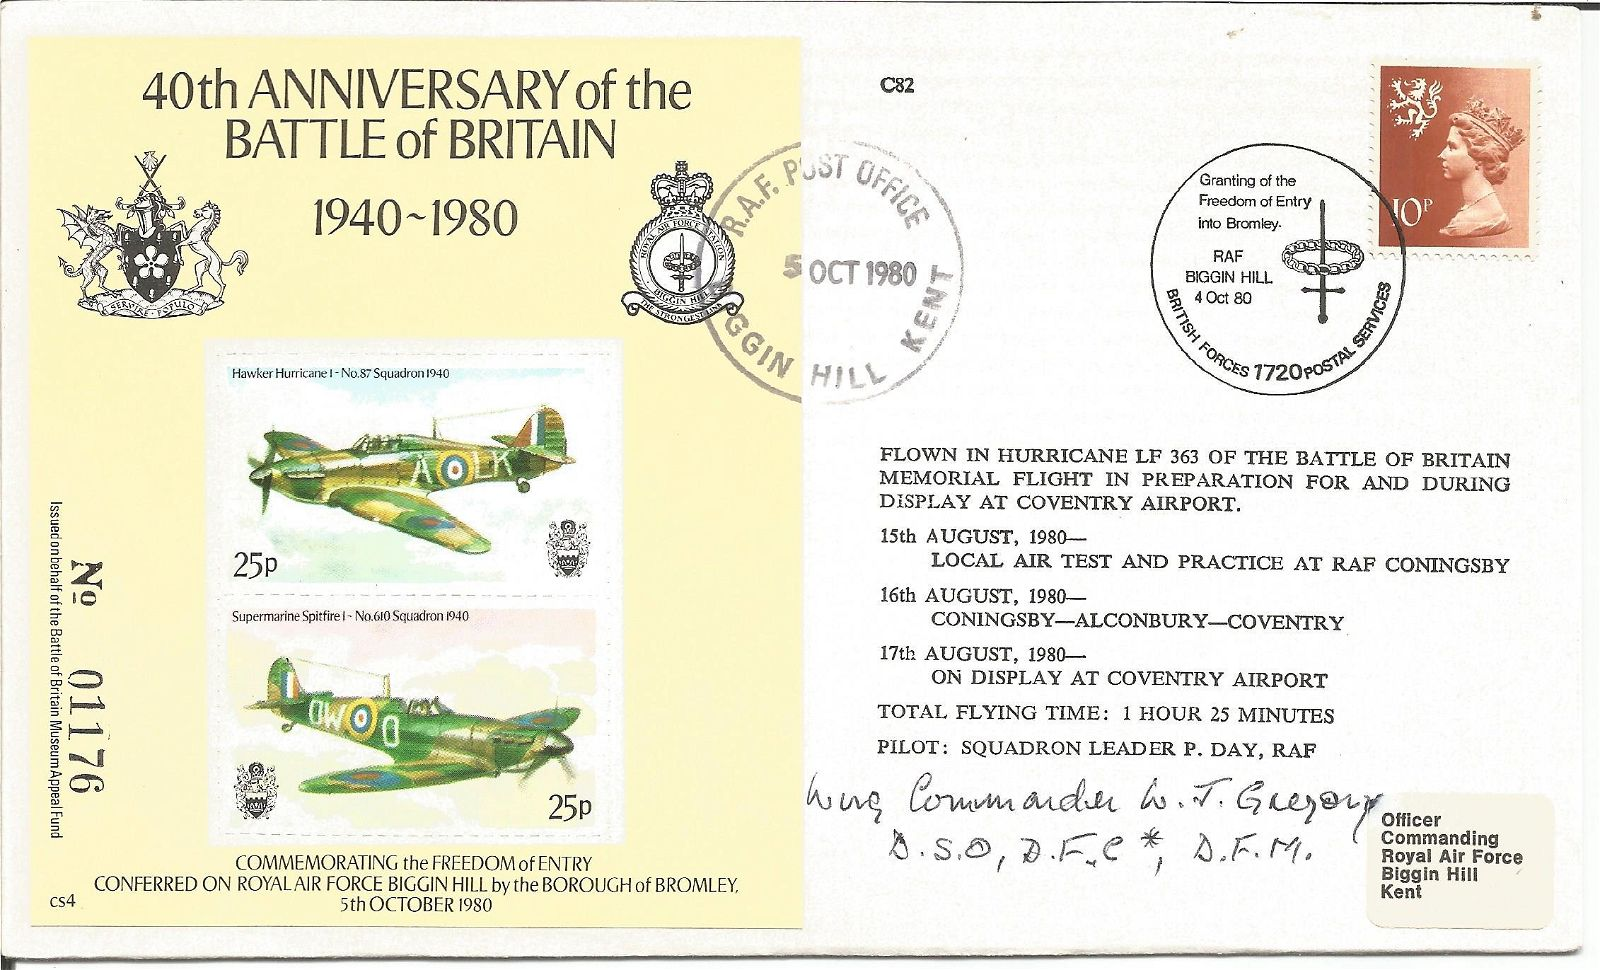 WW2 Battle of Britain pilot Wg Cdr W Gregory DSO DFC